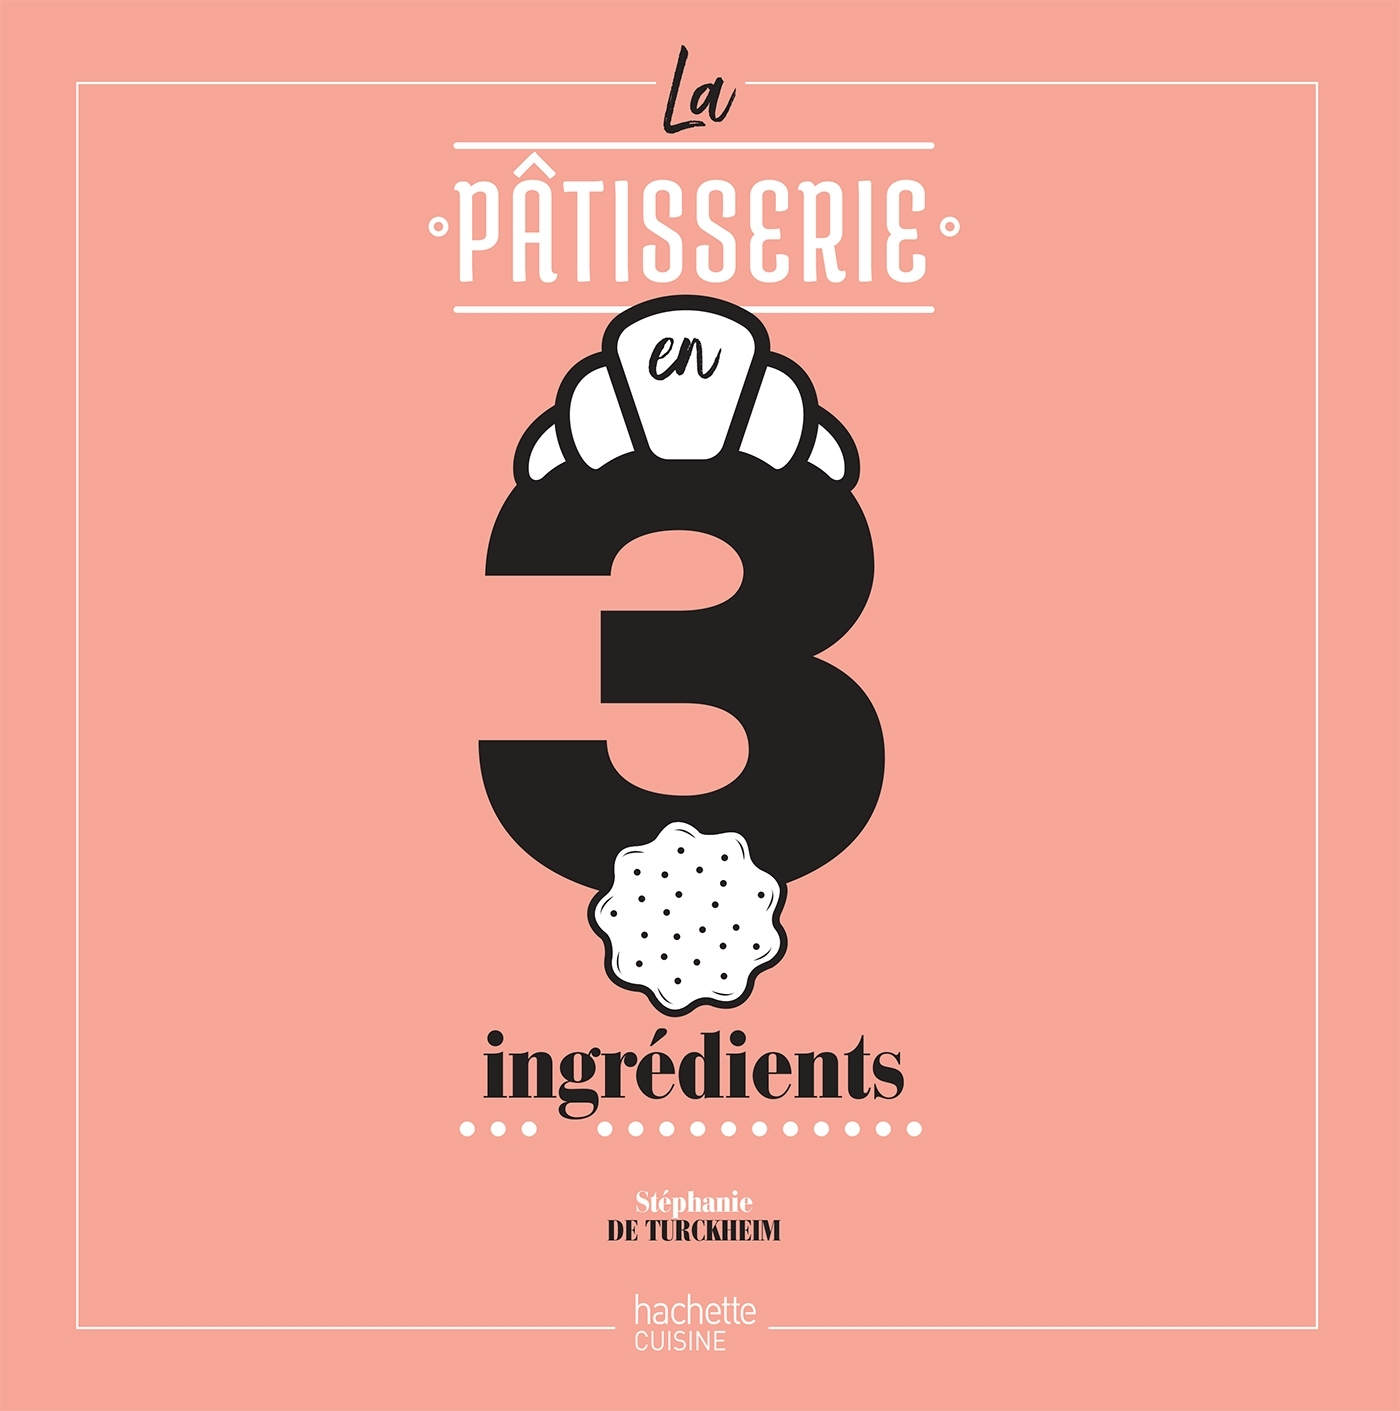 LA PATISSERIE EN 3 INGREDIENTS